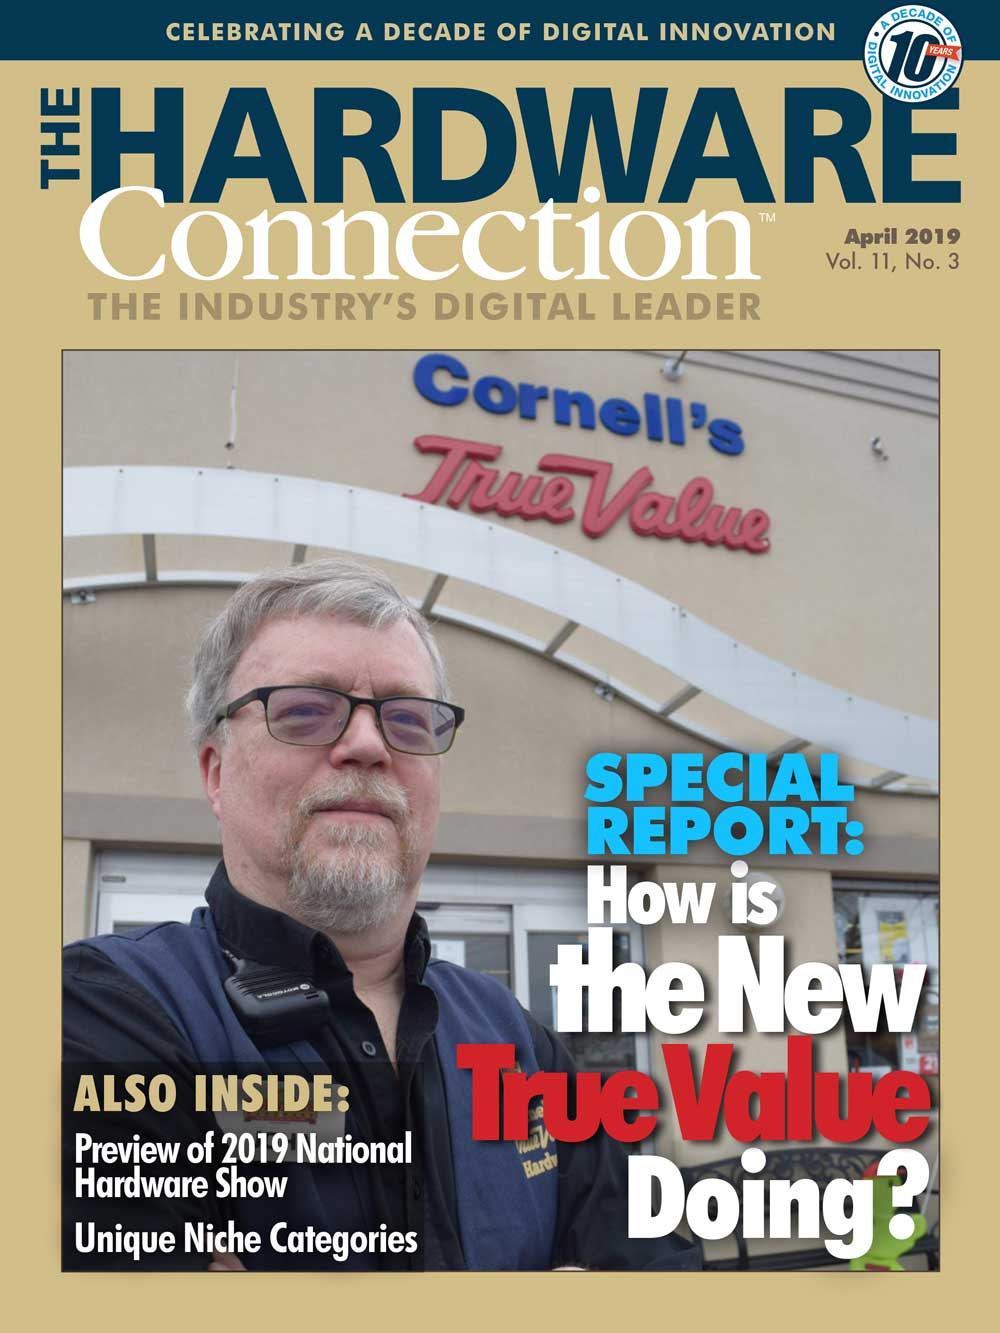 Woodstock Hardware featured in the Hardware connection for being AirBnB specialist